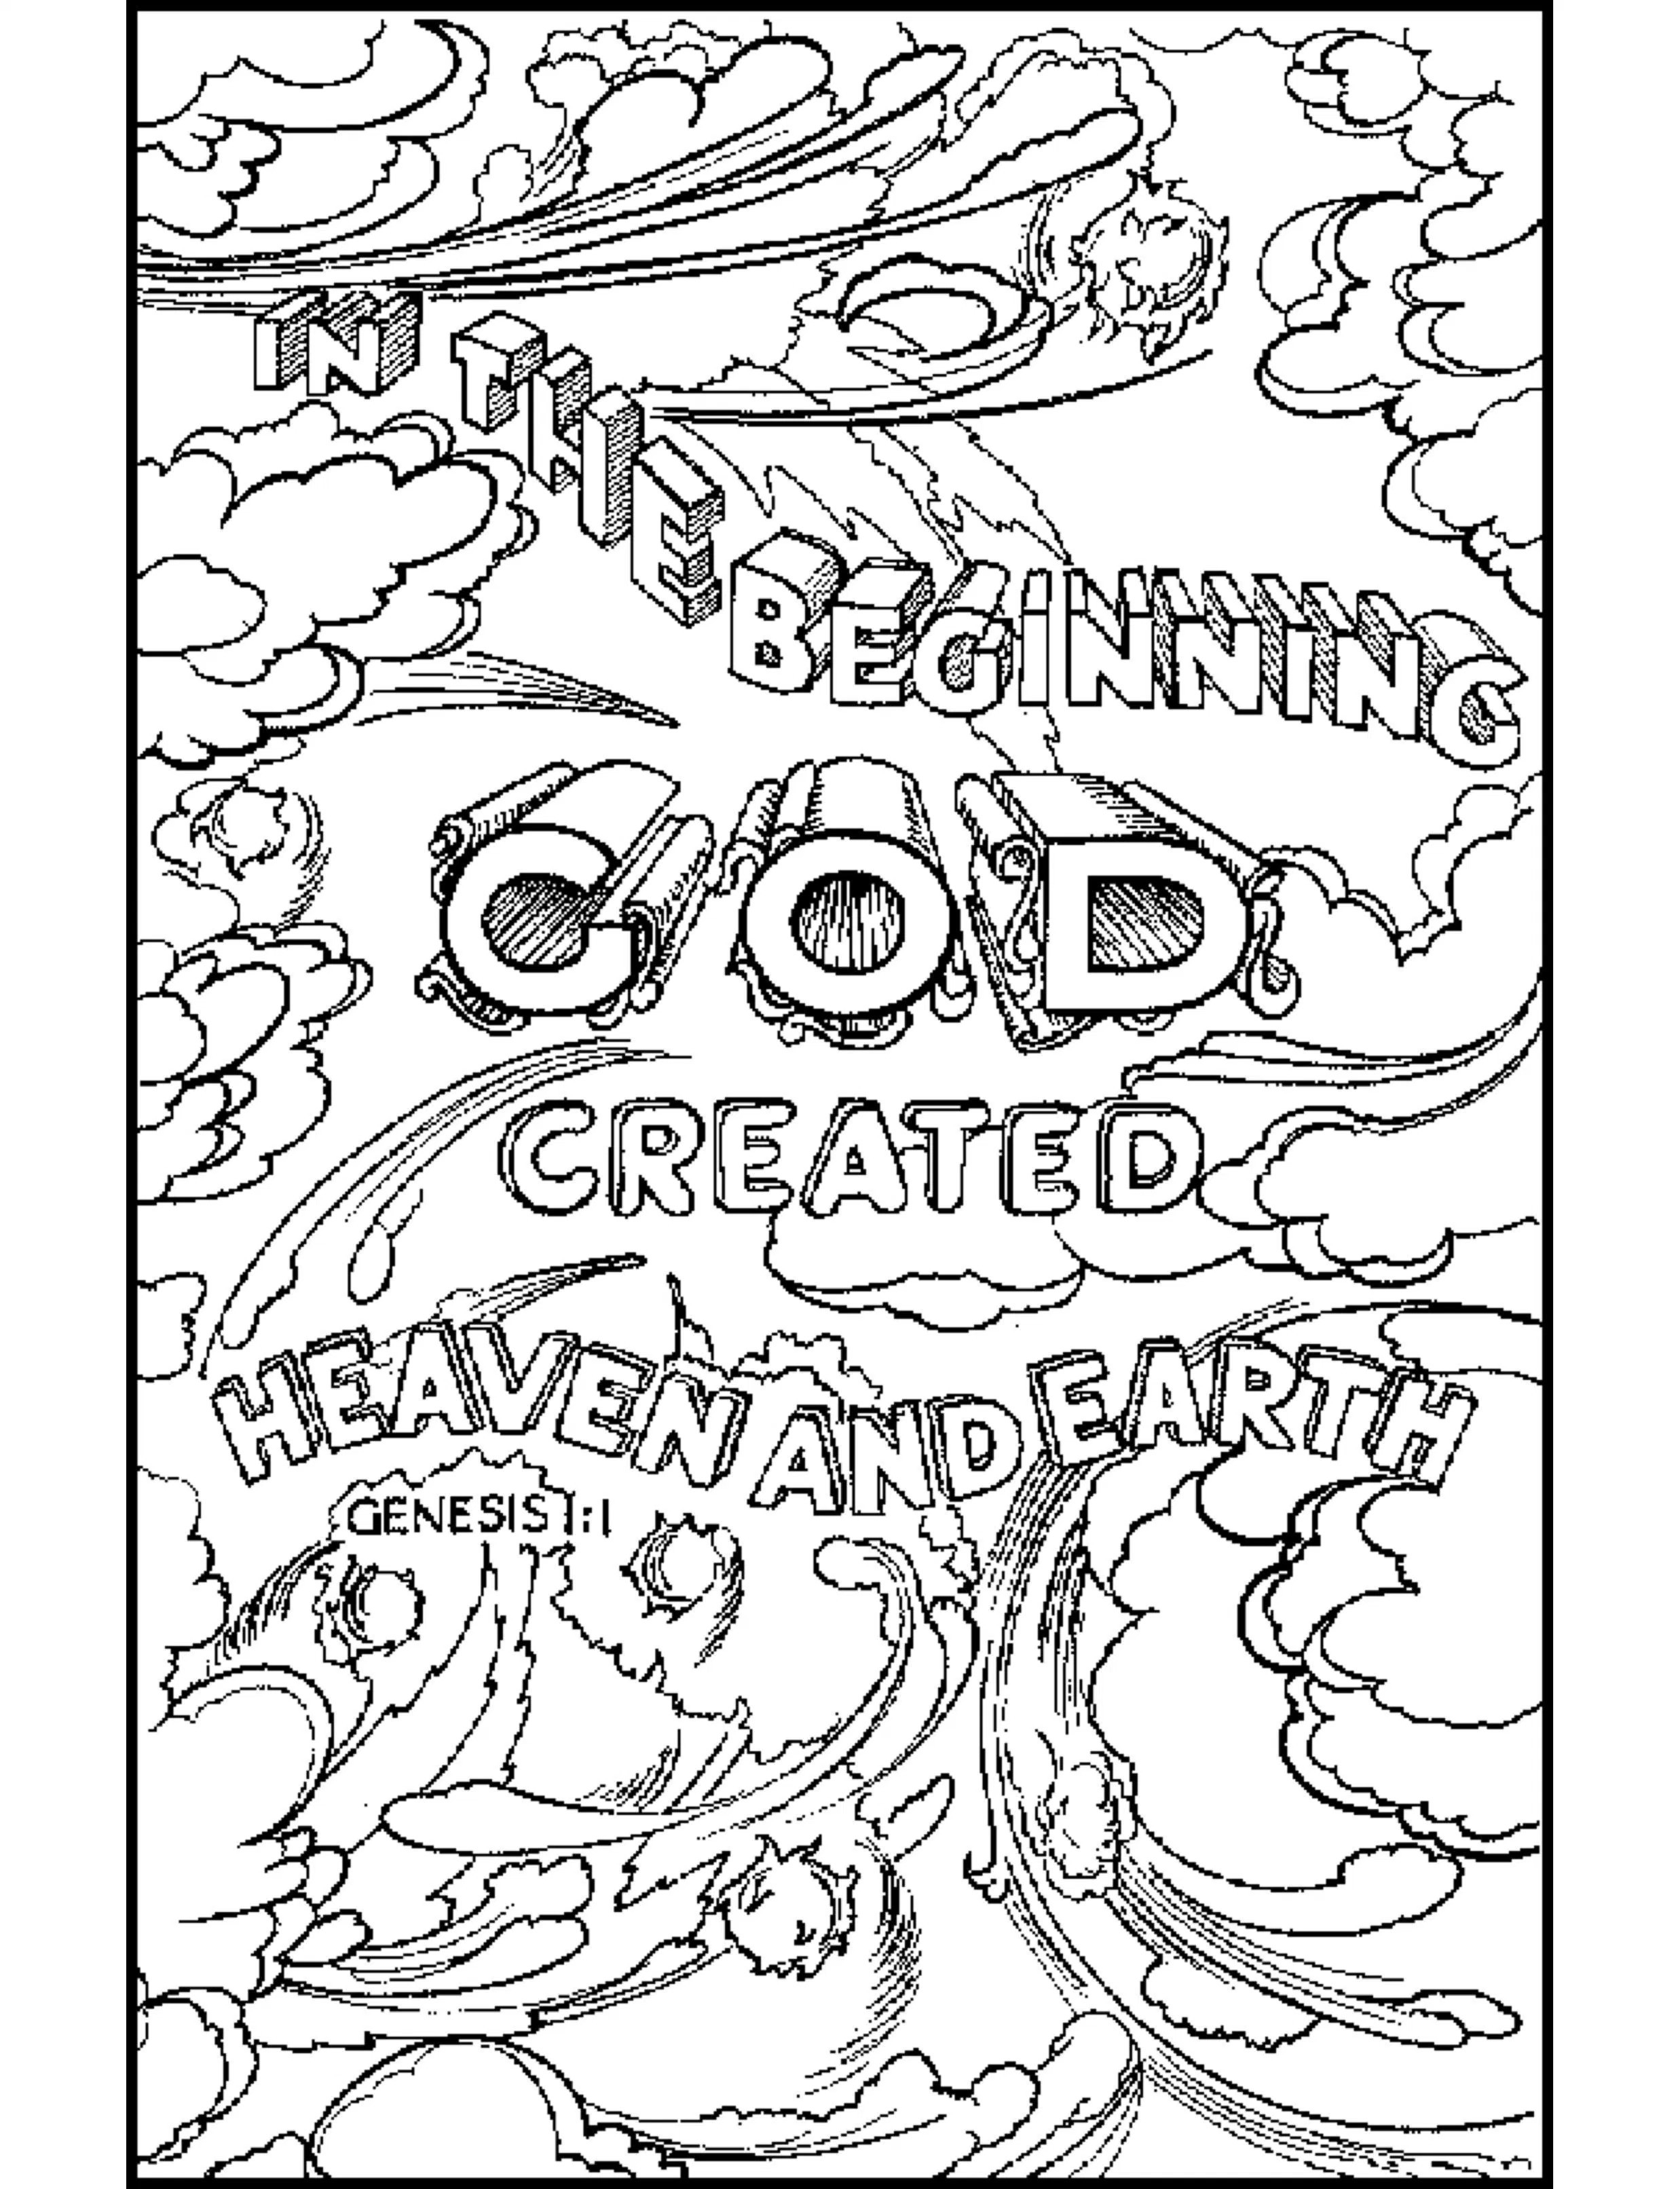 Free Bible Coloring Pages Kids Download 13m - To print for your project